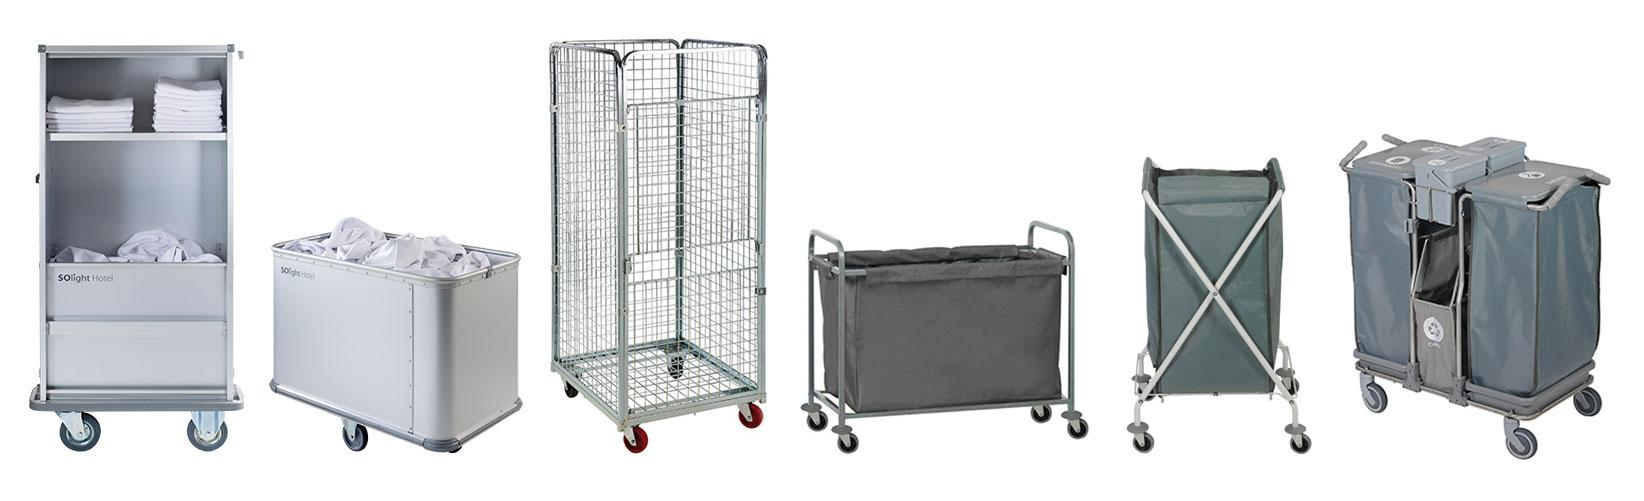 Solight laundry service trolleys